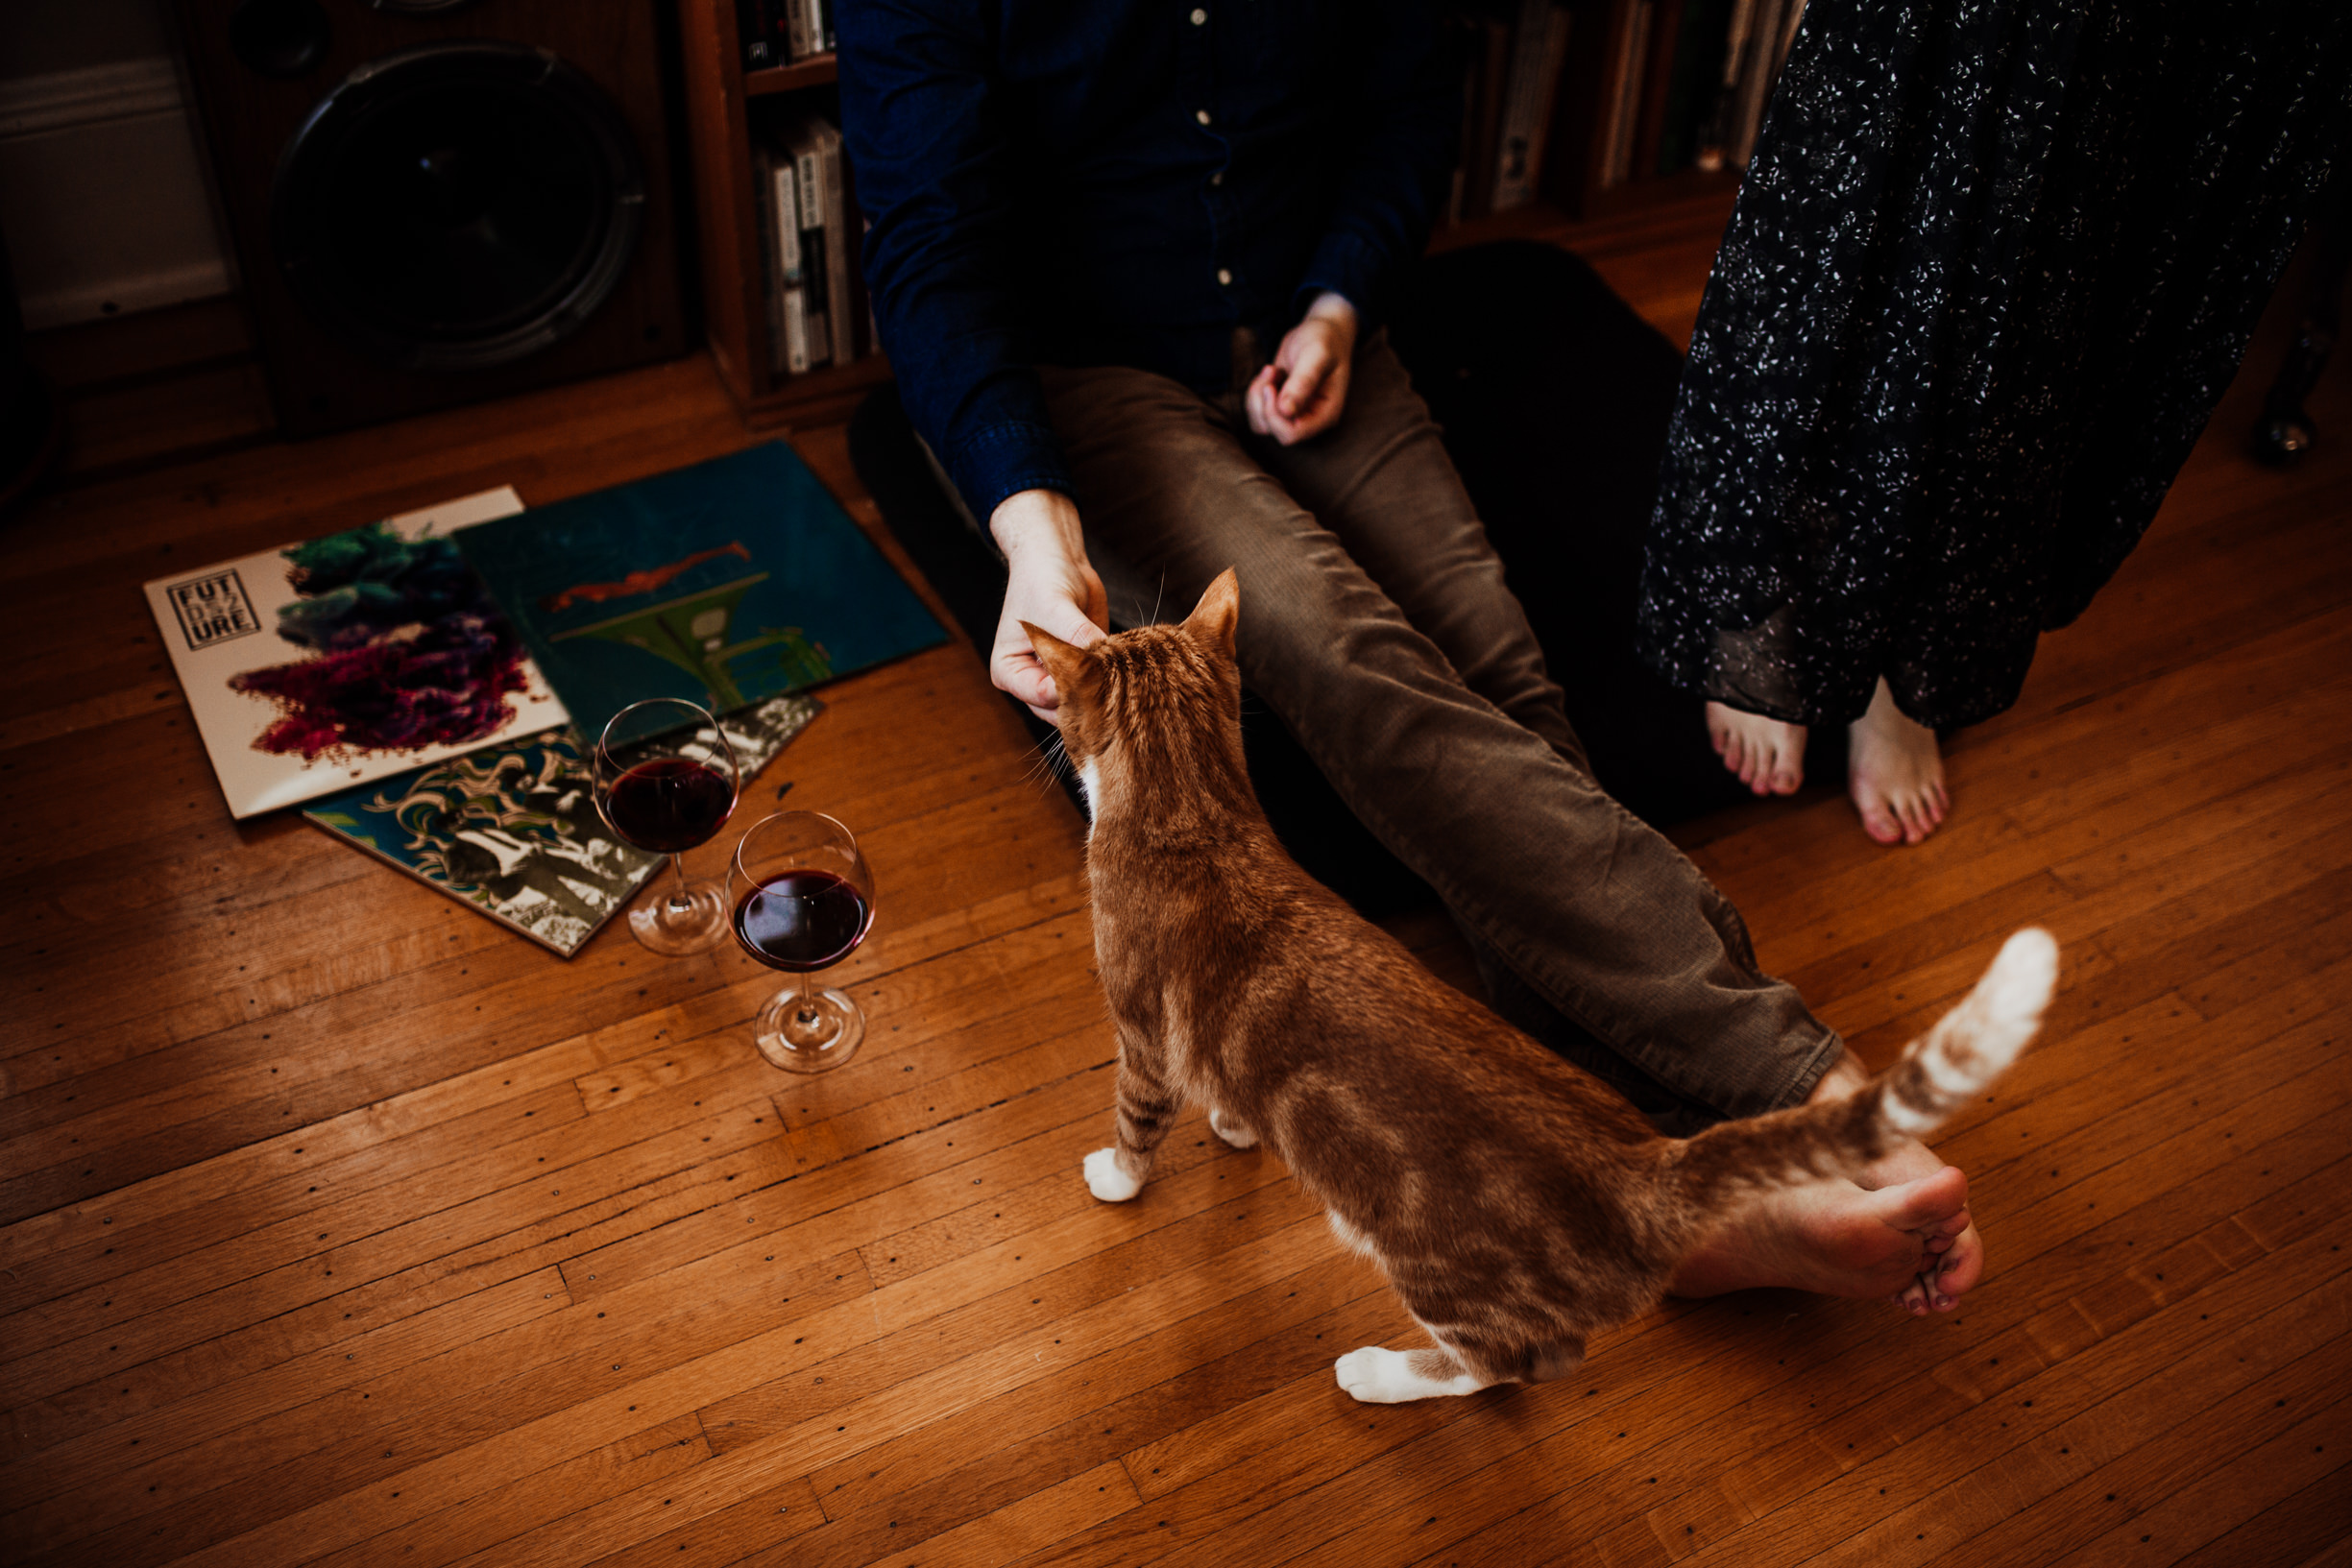 louisville-engagement-photographer-record-store-in-home-session-crystal-ludwick-photo (2 of 53).jpg